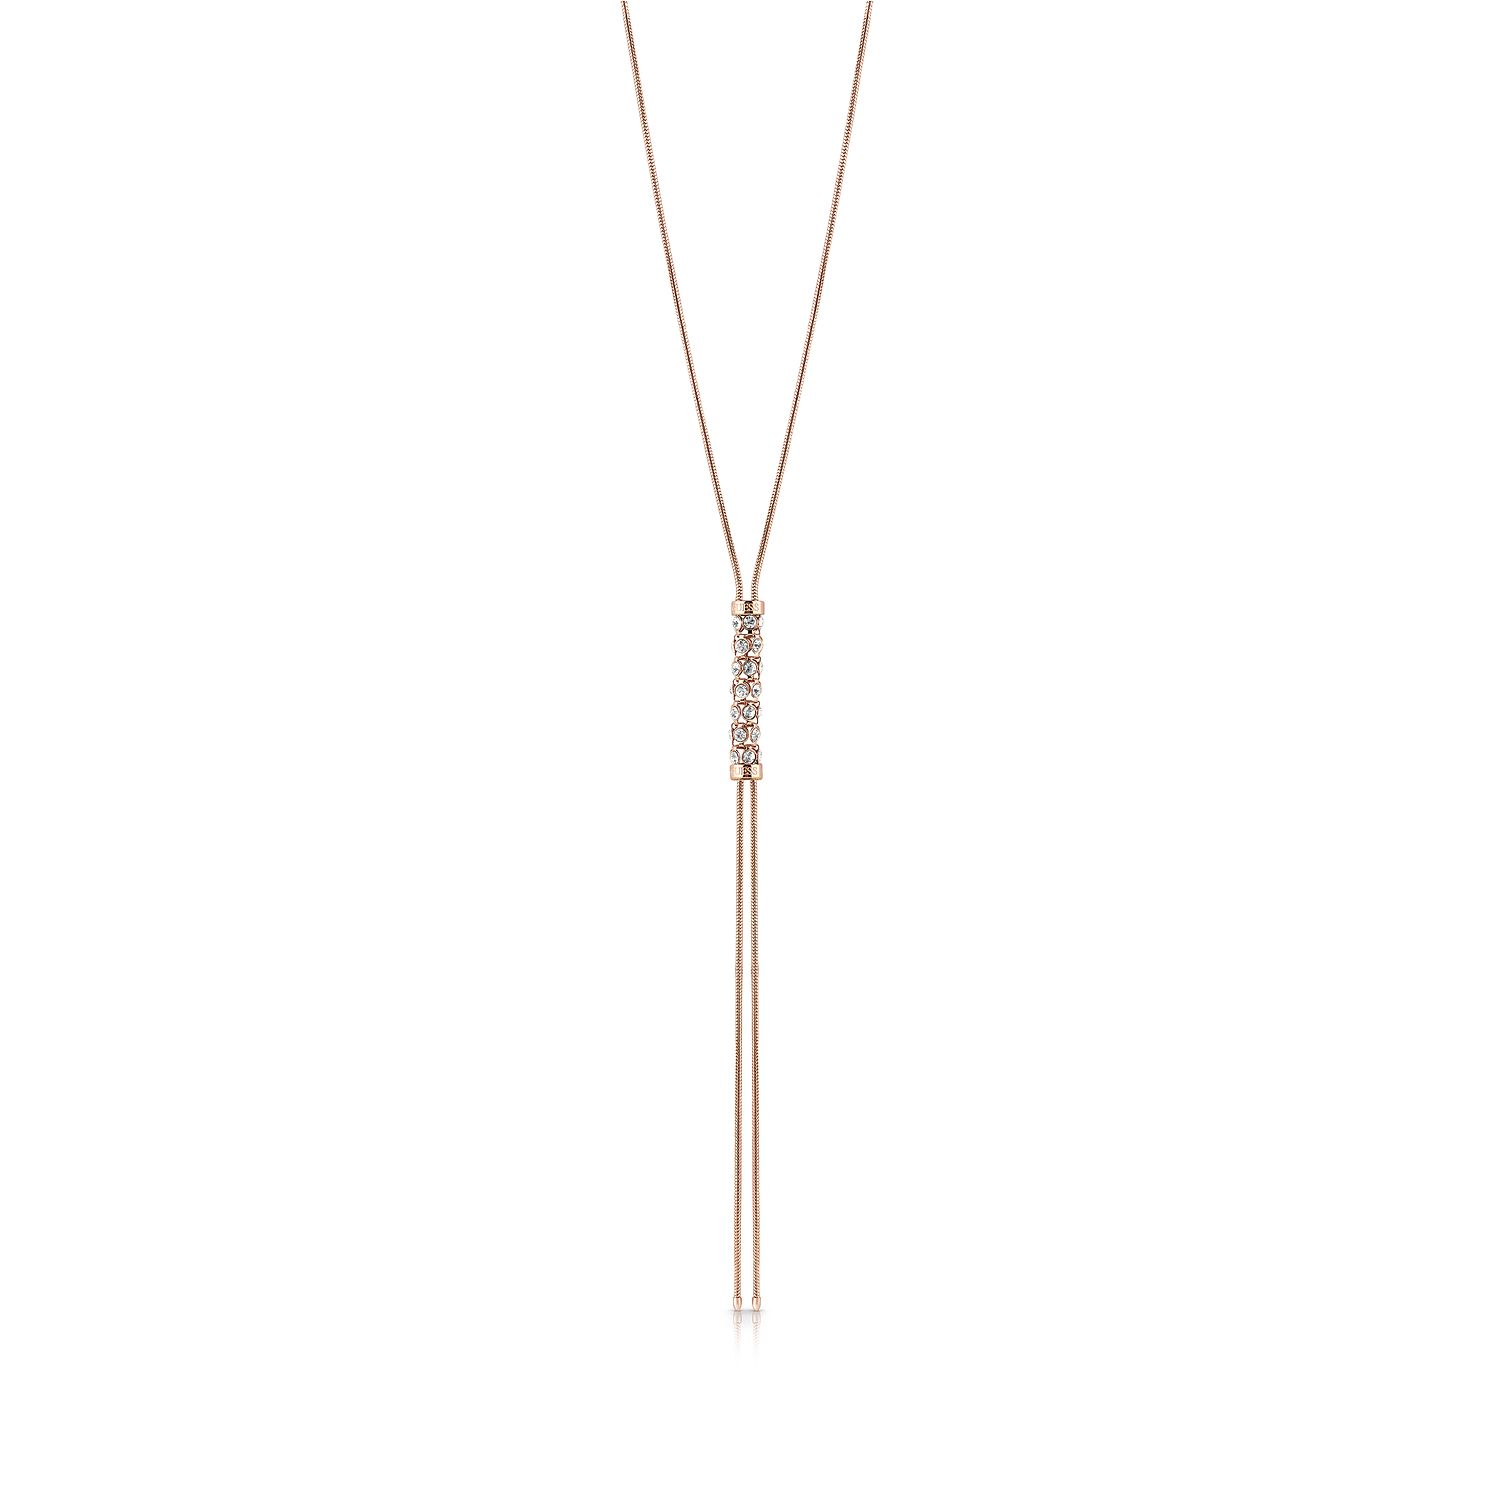 Guess Rose Gold Plated Crystal Coil 16-18 inches Necklace - Product number 1083074